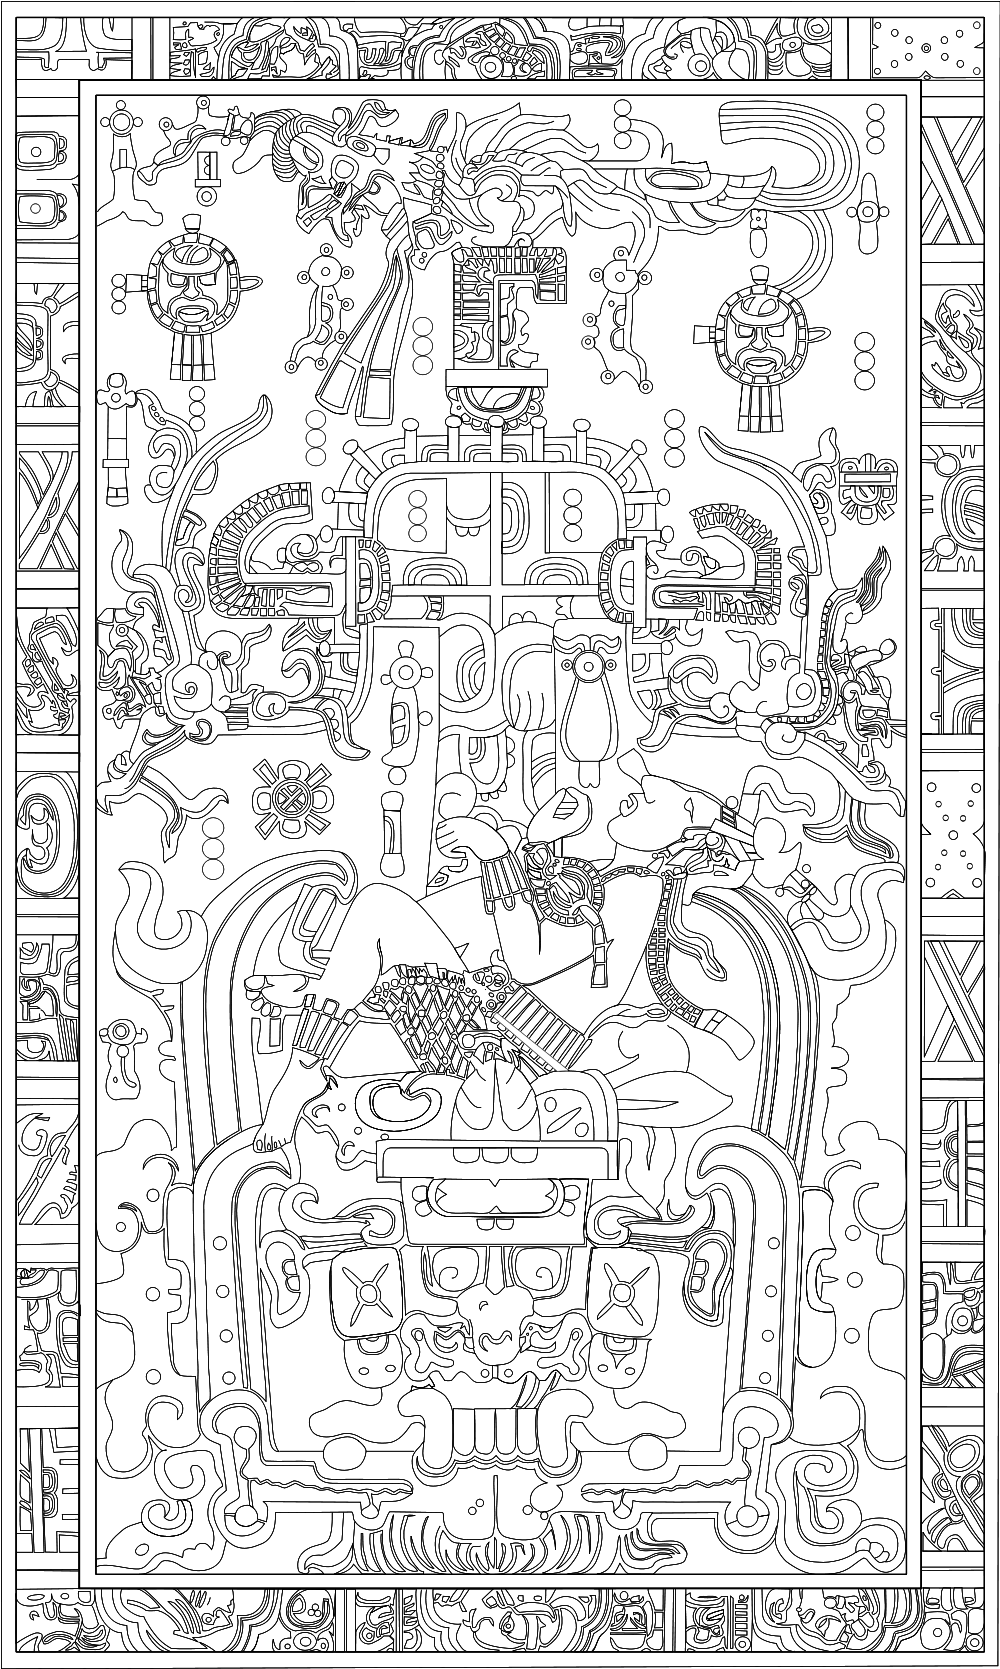 http://upload.wikimedia.org/wikipedia/commons/d/d9/Pakal_the_Great_tomb_lid.png